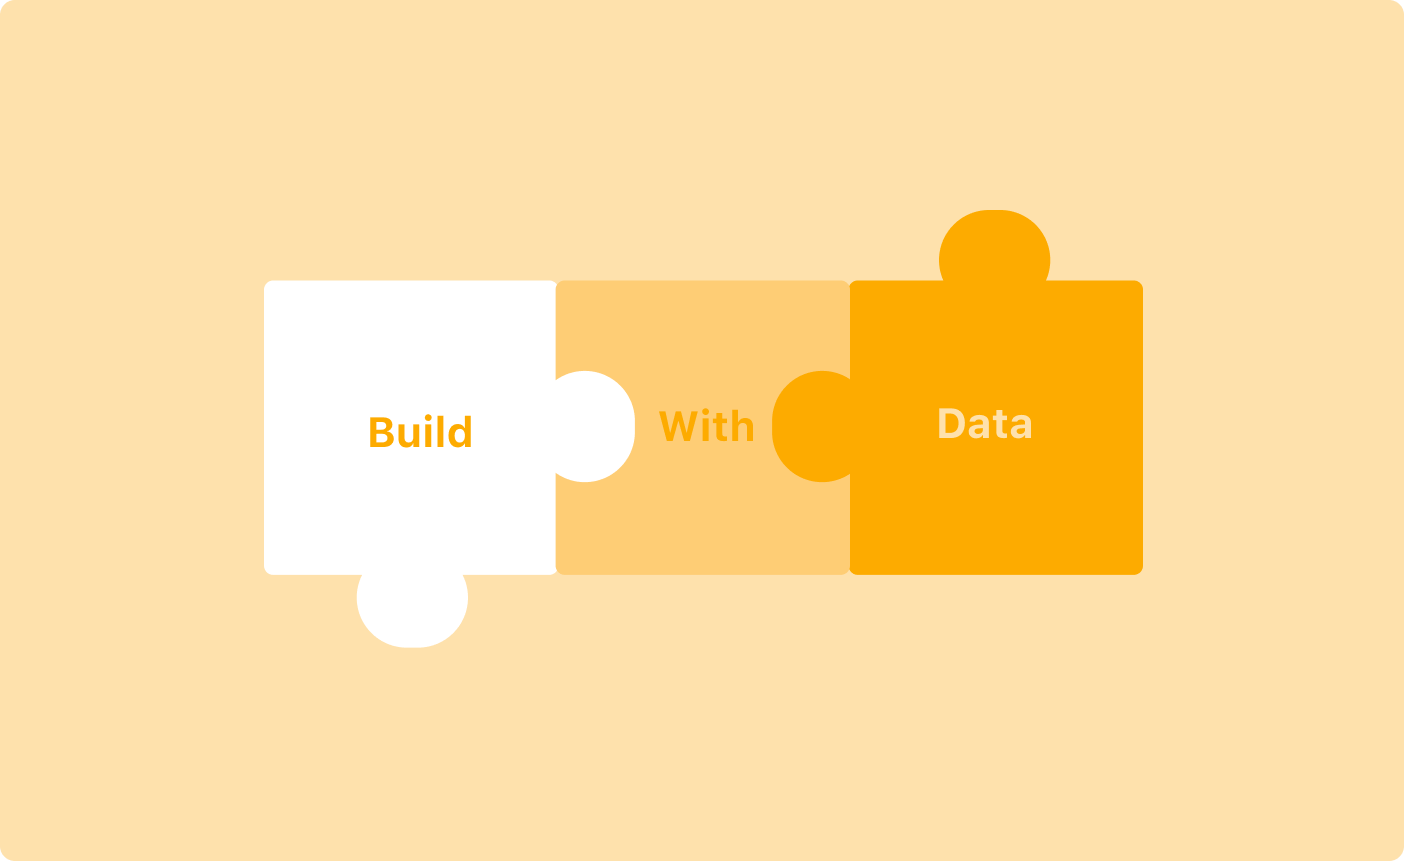 Build with data